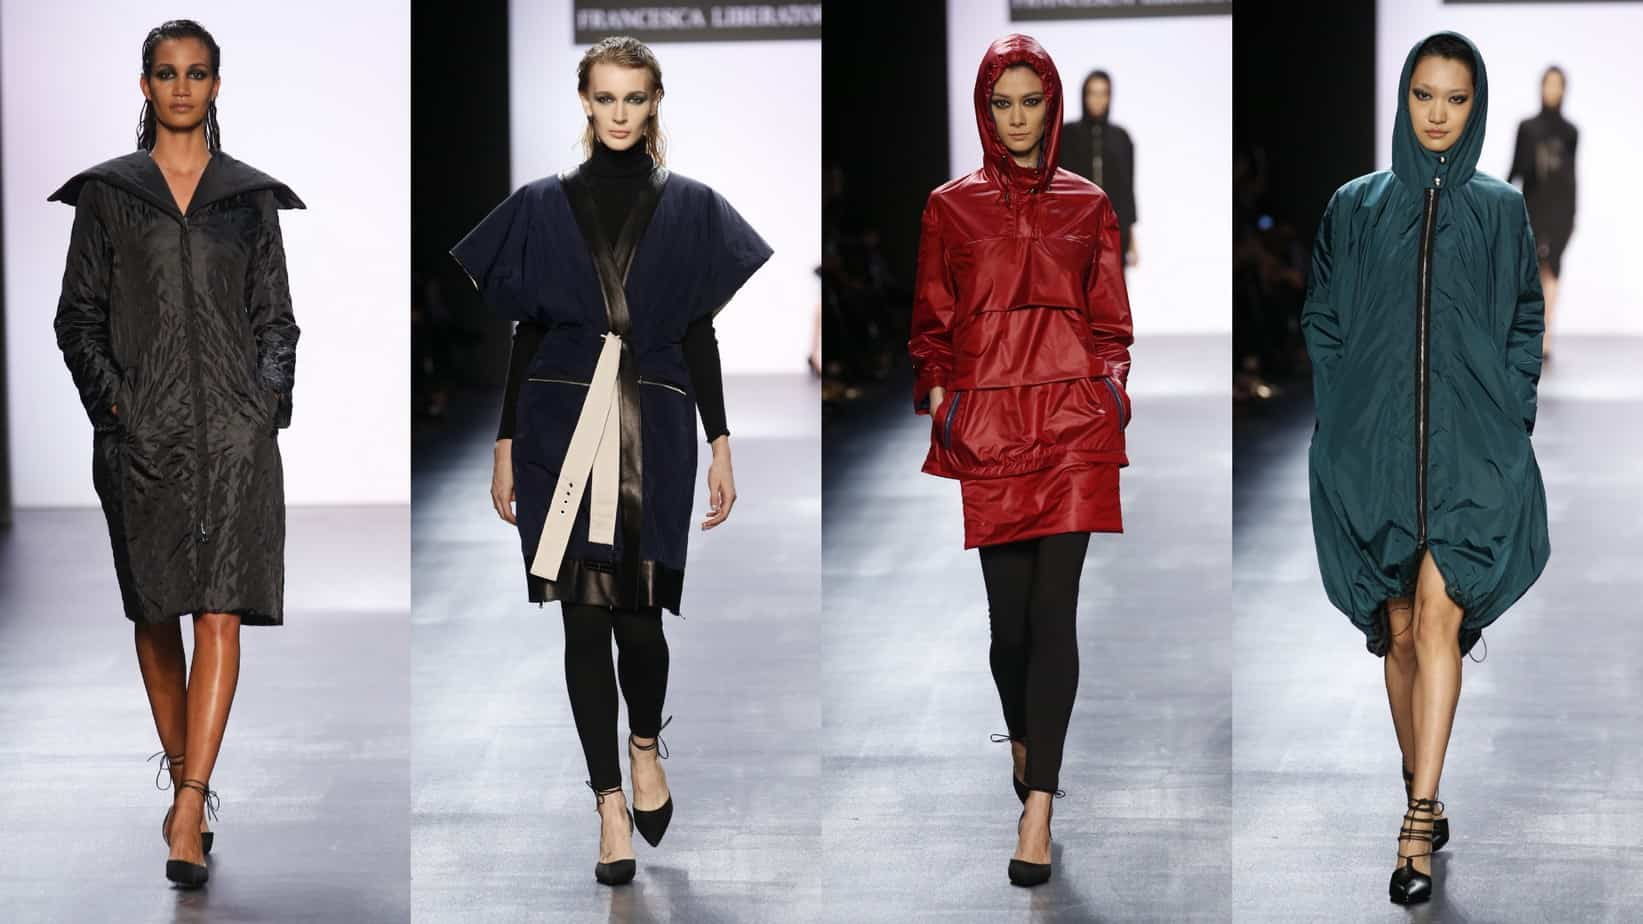 Francesca Liberatore Fall Winter 2016